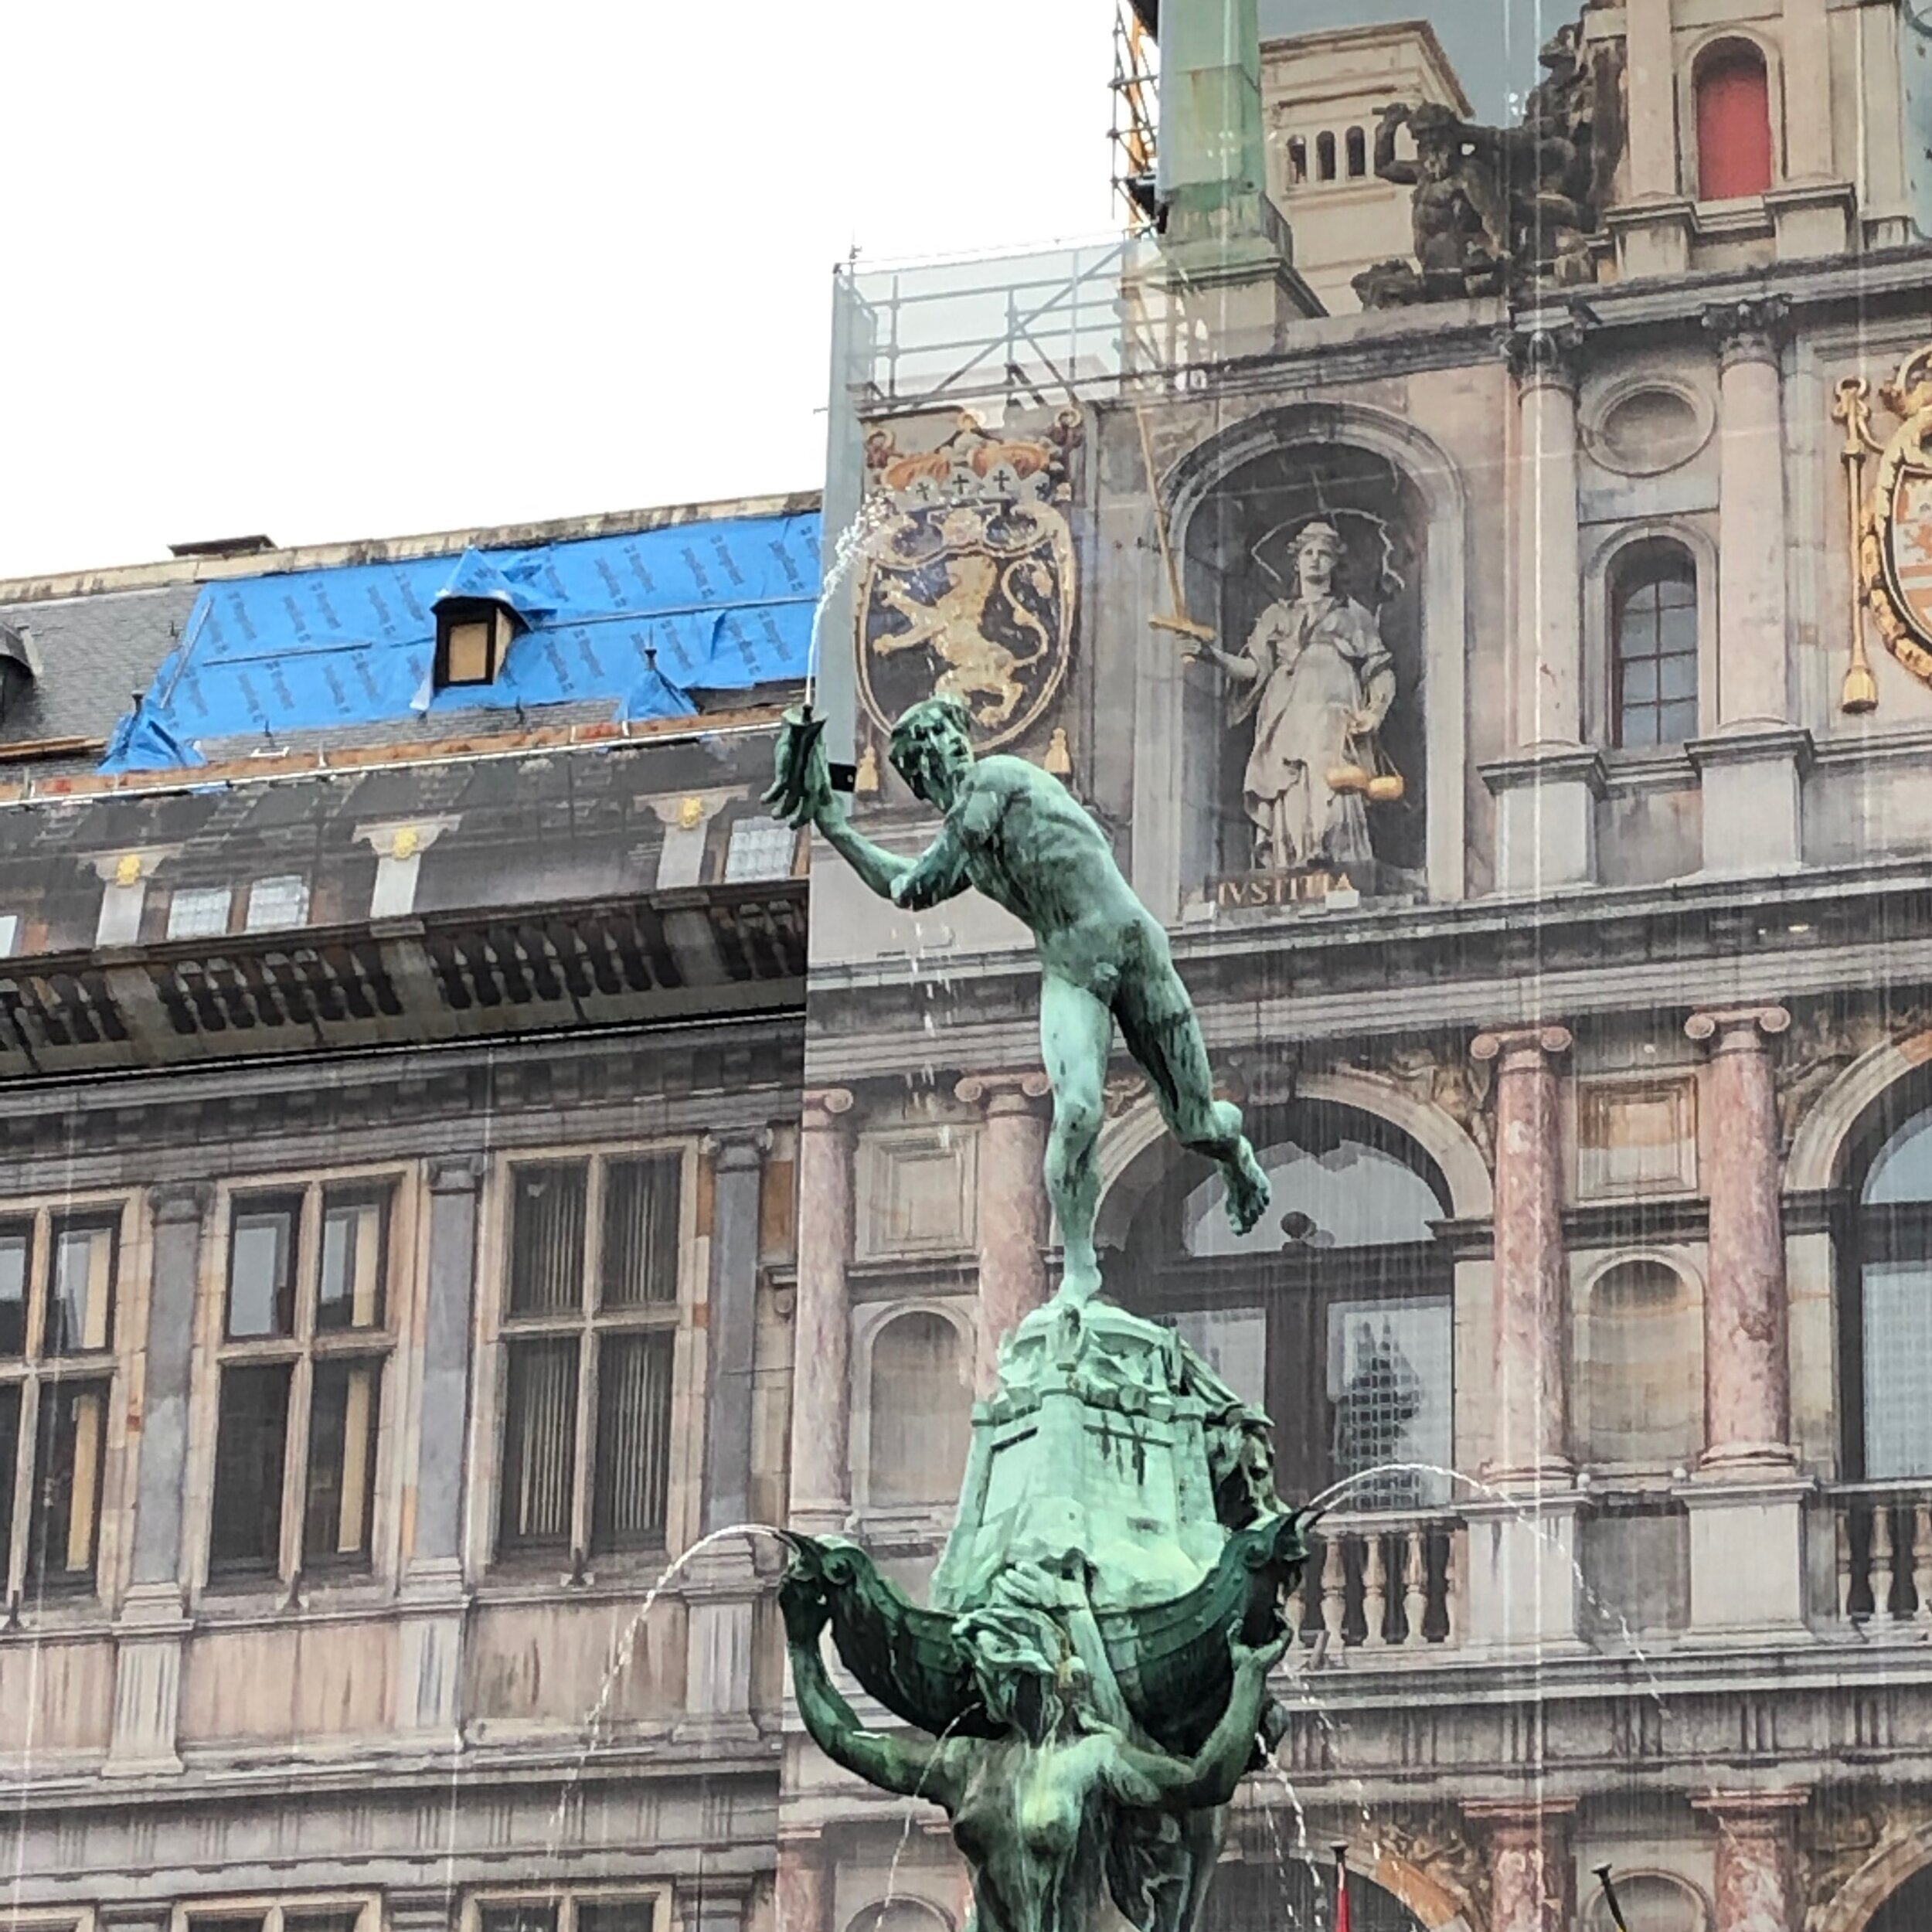 Antwerp City Hall with statues depicting the city's eponymous legend